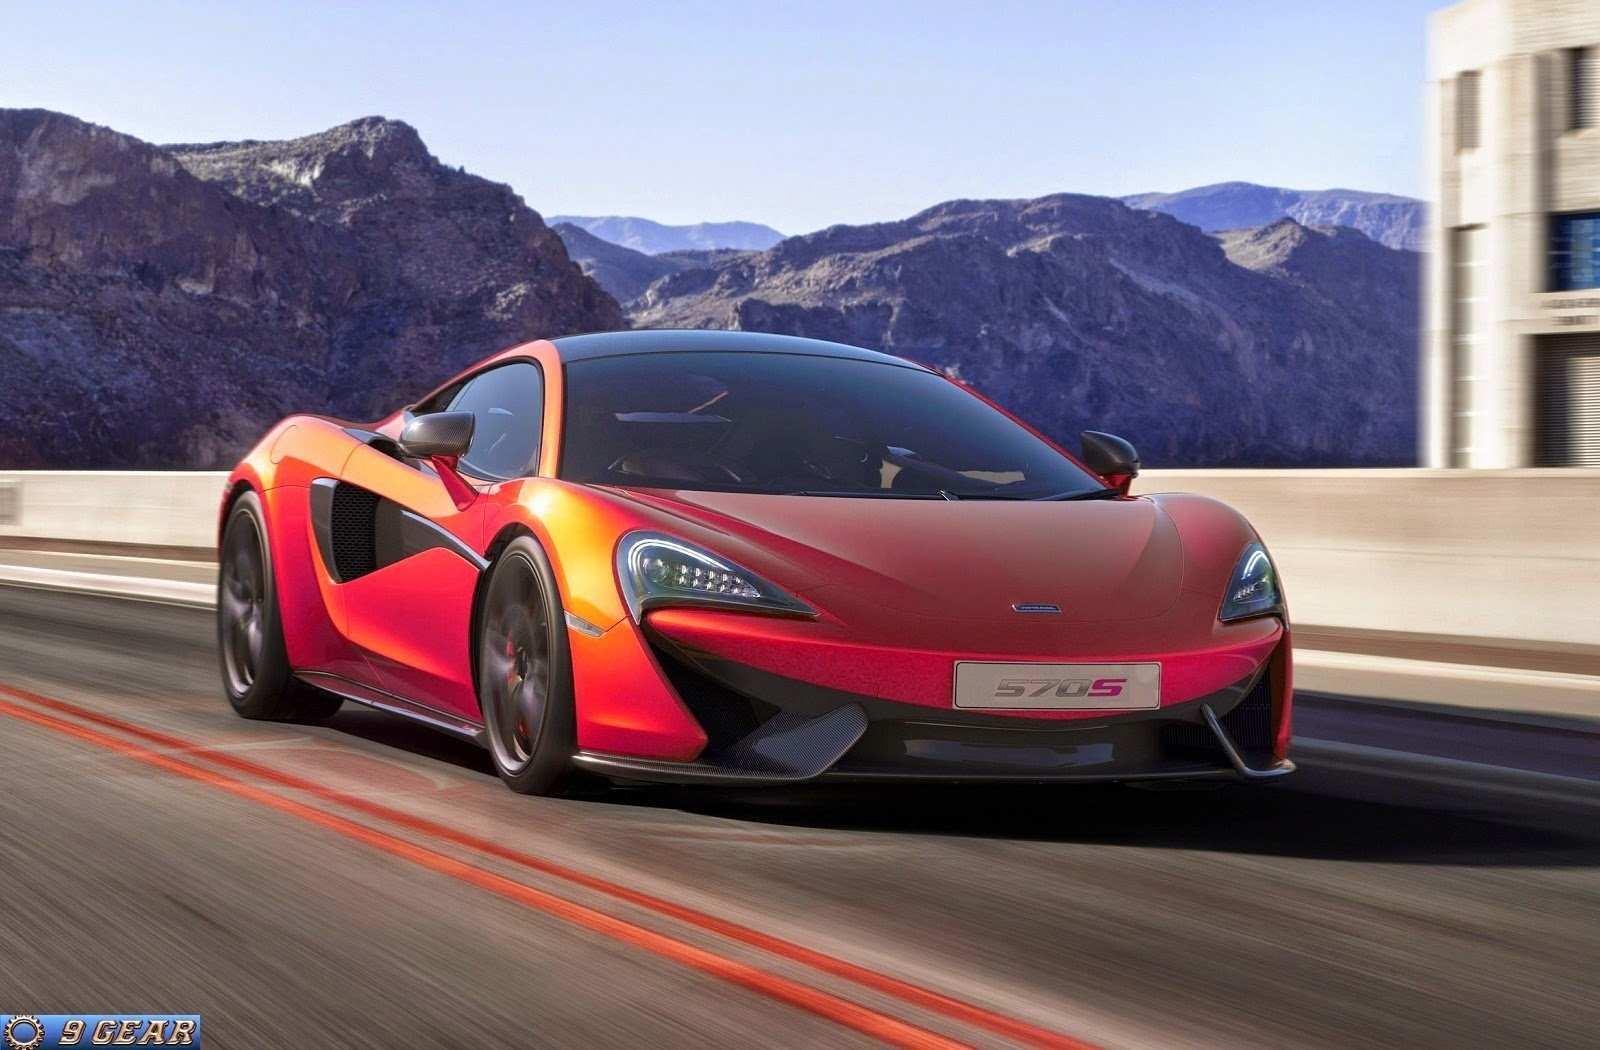 78 Concept of 2020 Mclaren 570S Performance and New Engine for 2020 Mclaren 570S